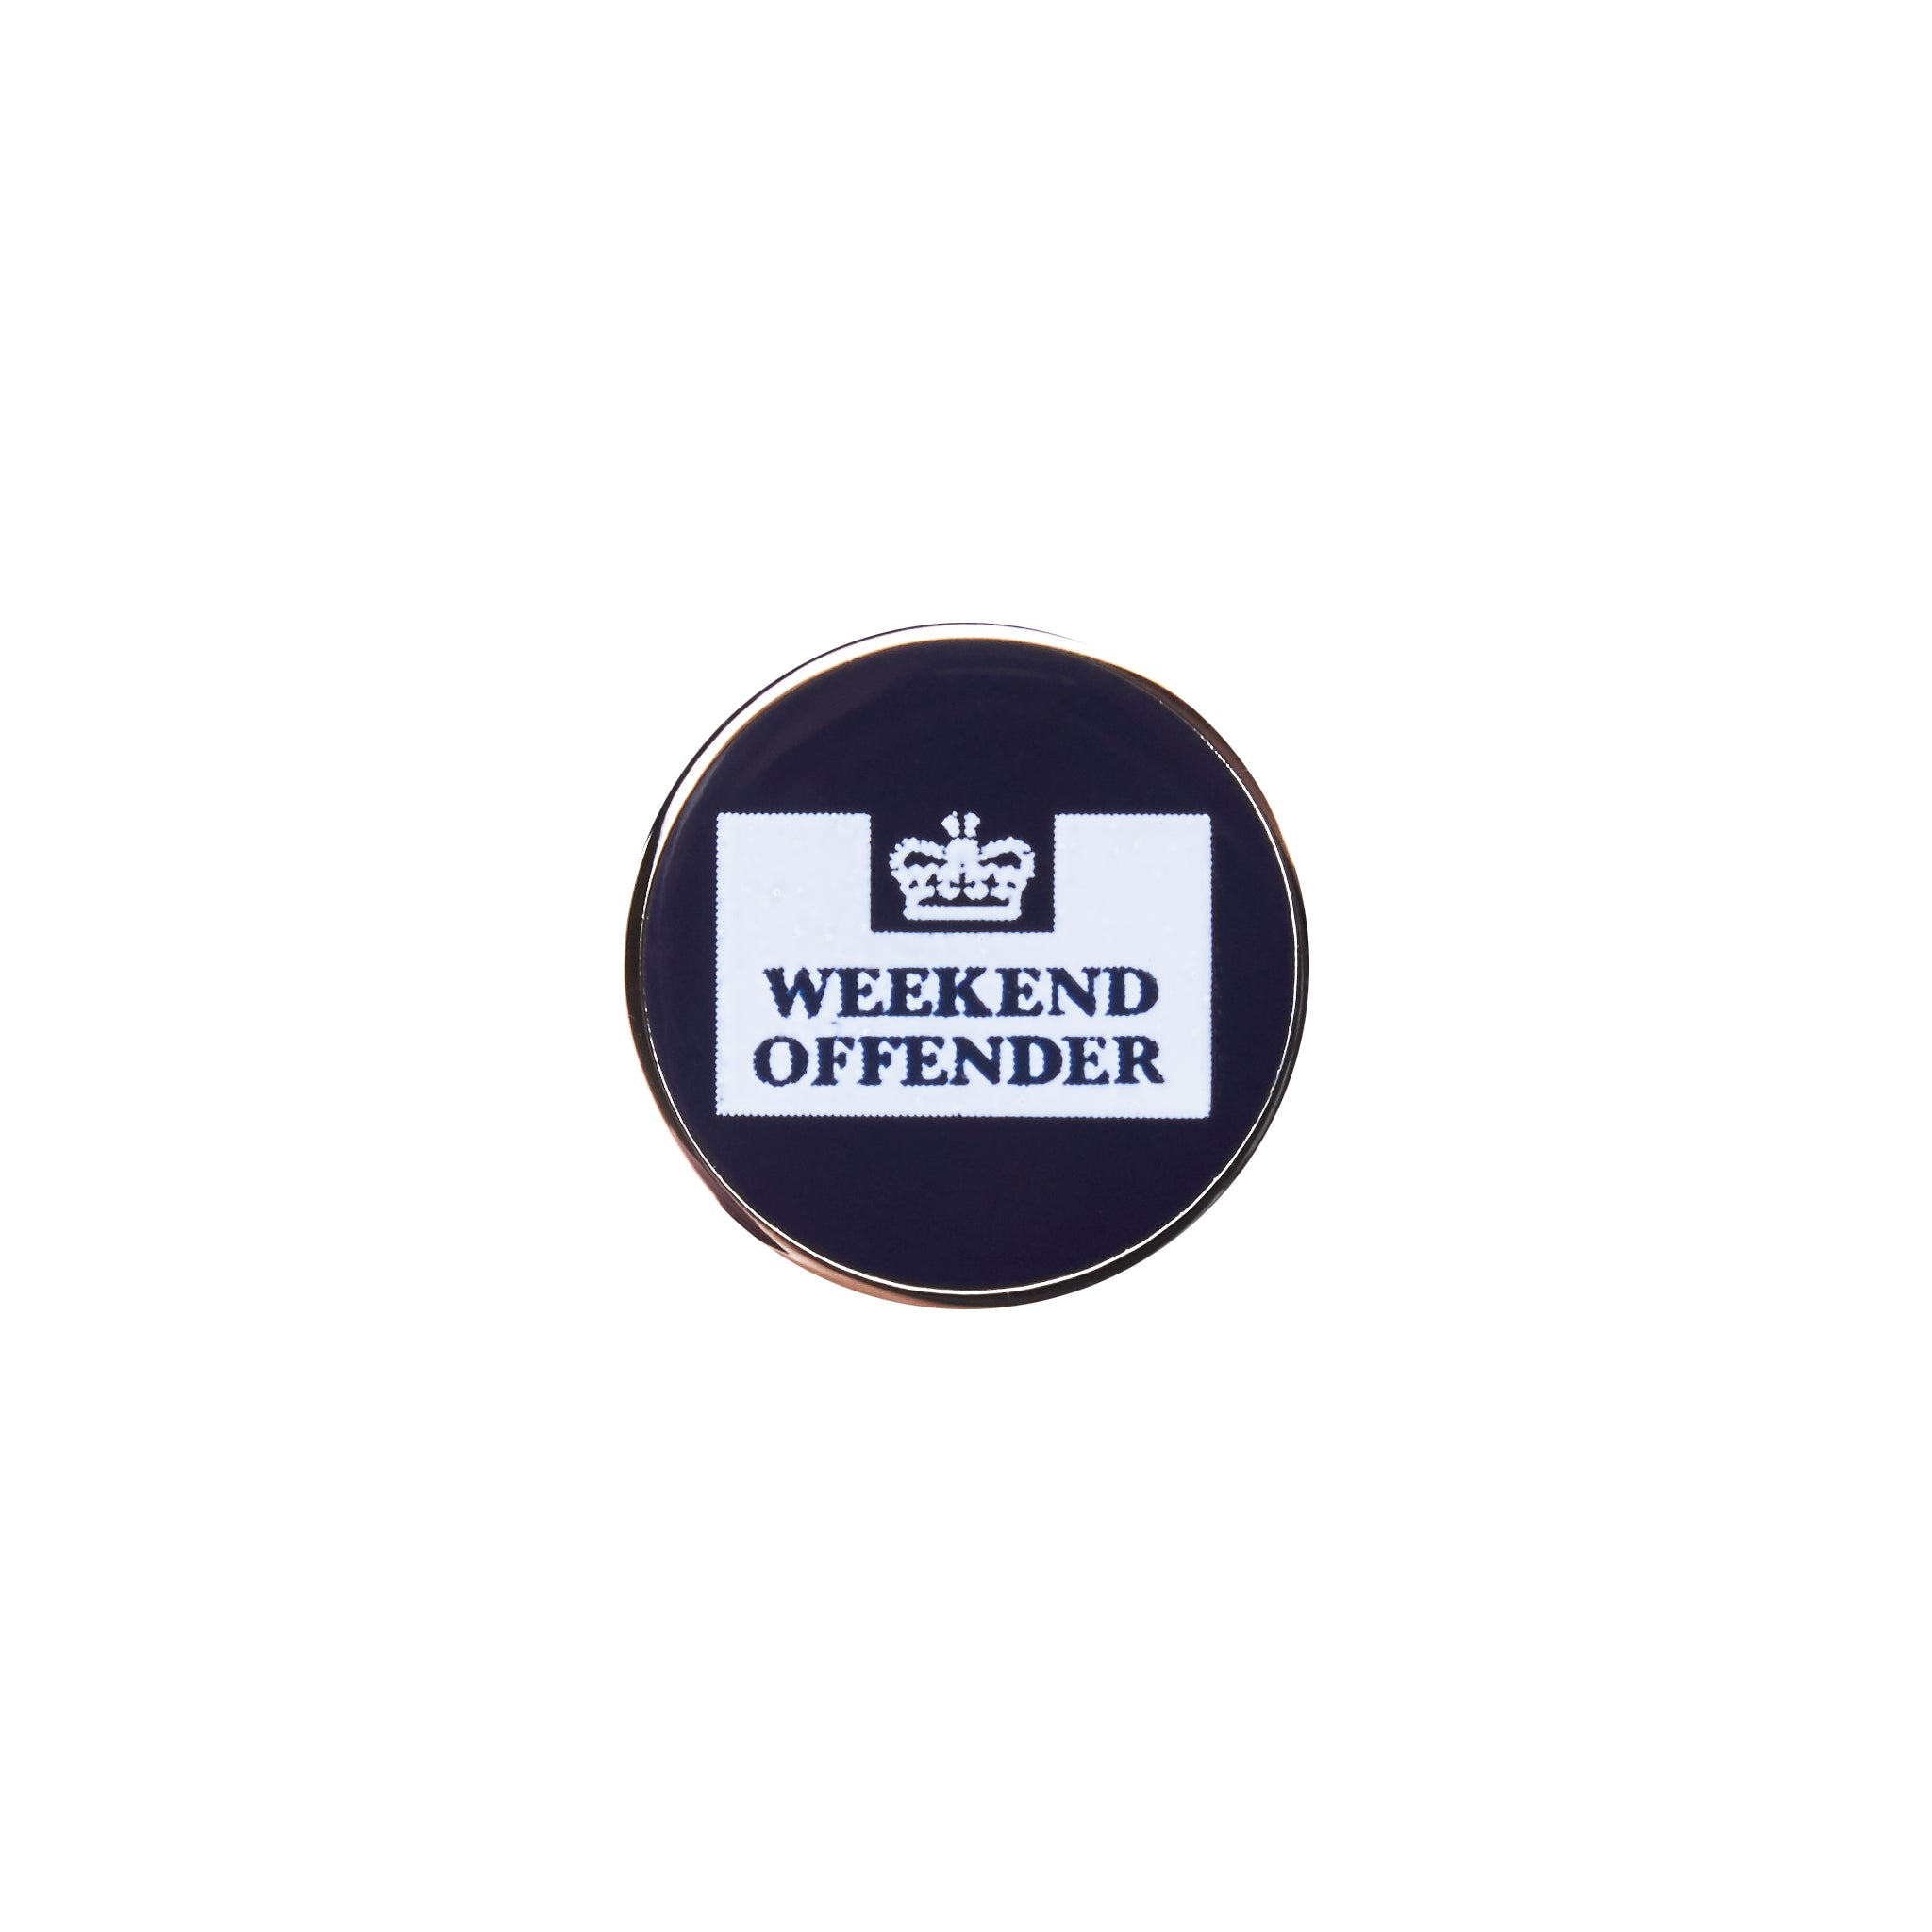 Weekend Offender Circular Pin Badge